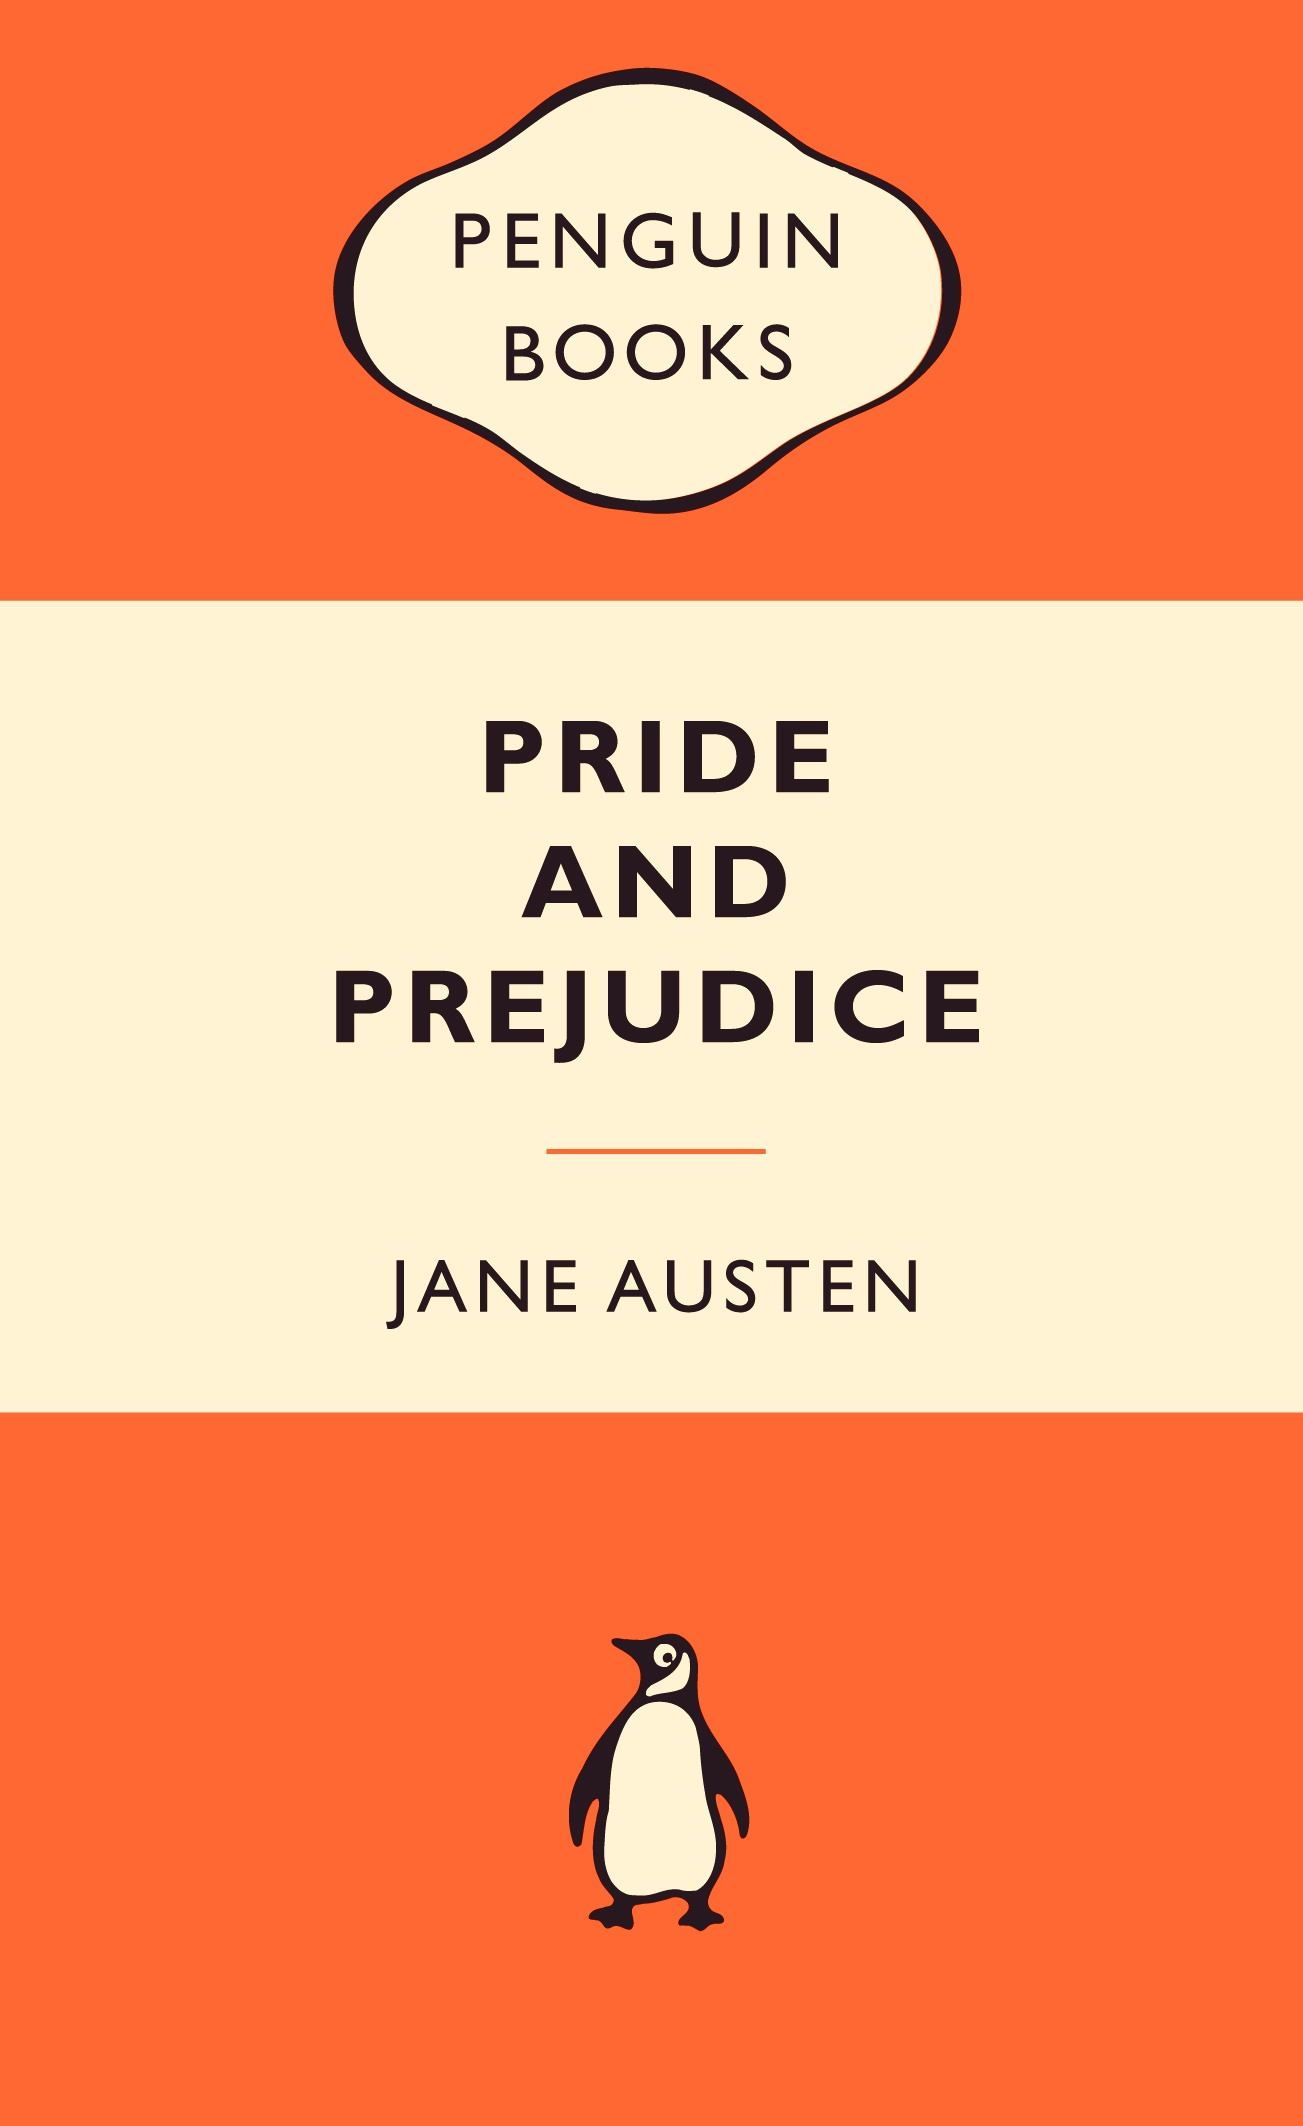 Penguin Book Cover Personalised : Friday book ging penguin turns edition austen